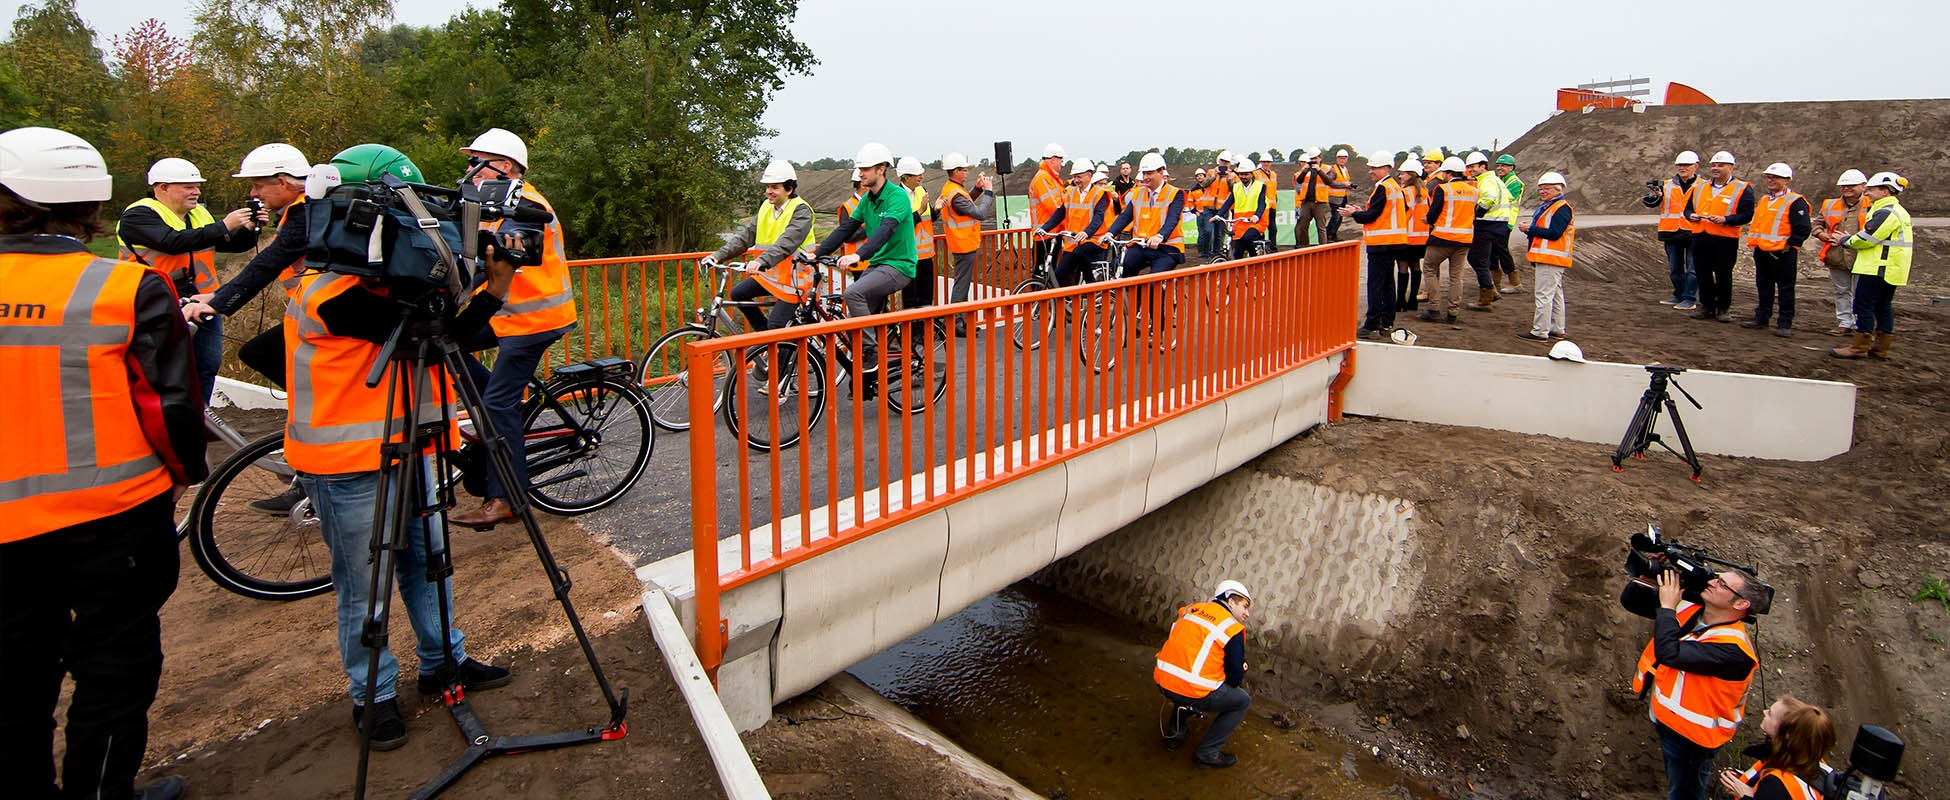 First 3D printed bicycle bridge in Noord-Brabant, created by BAM Infra and Eindhoven University of Technology. Photo via BAM Infra.